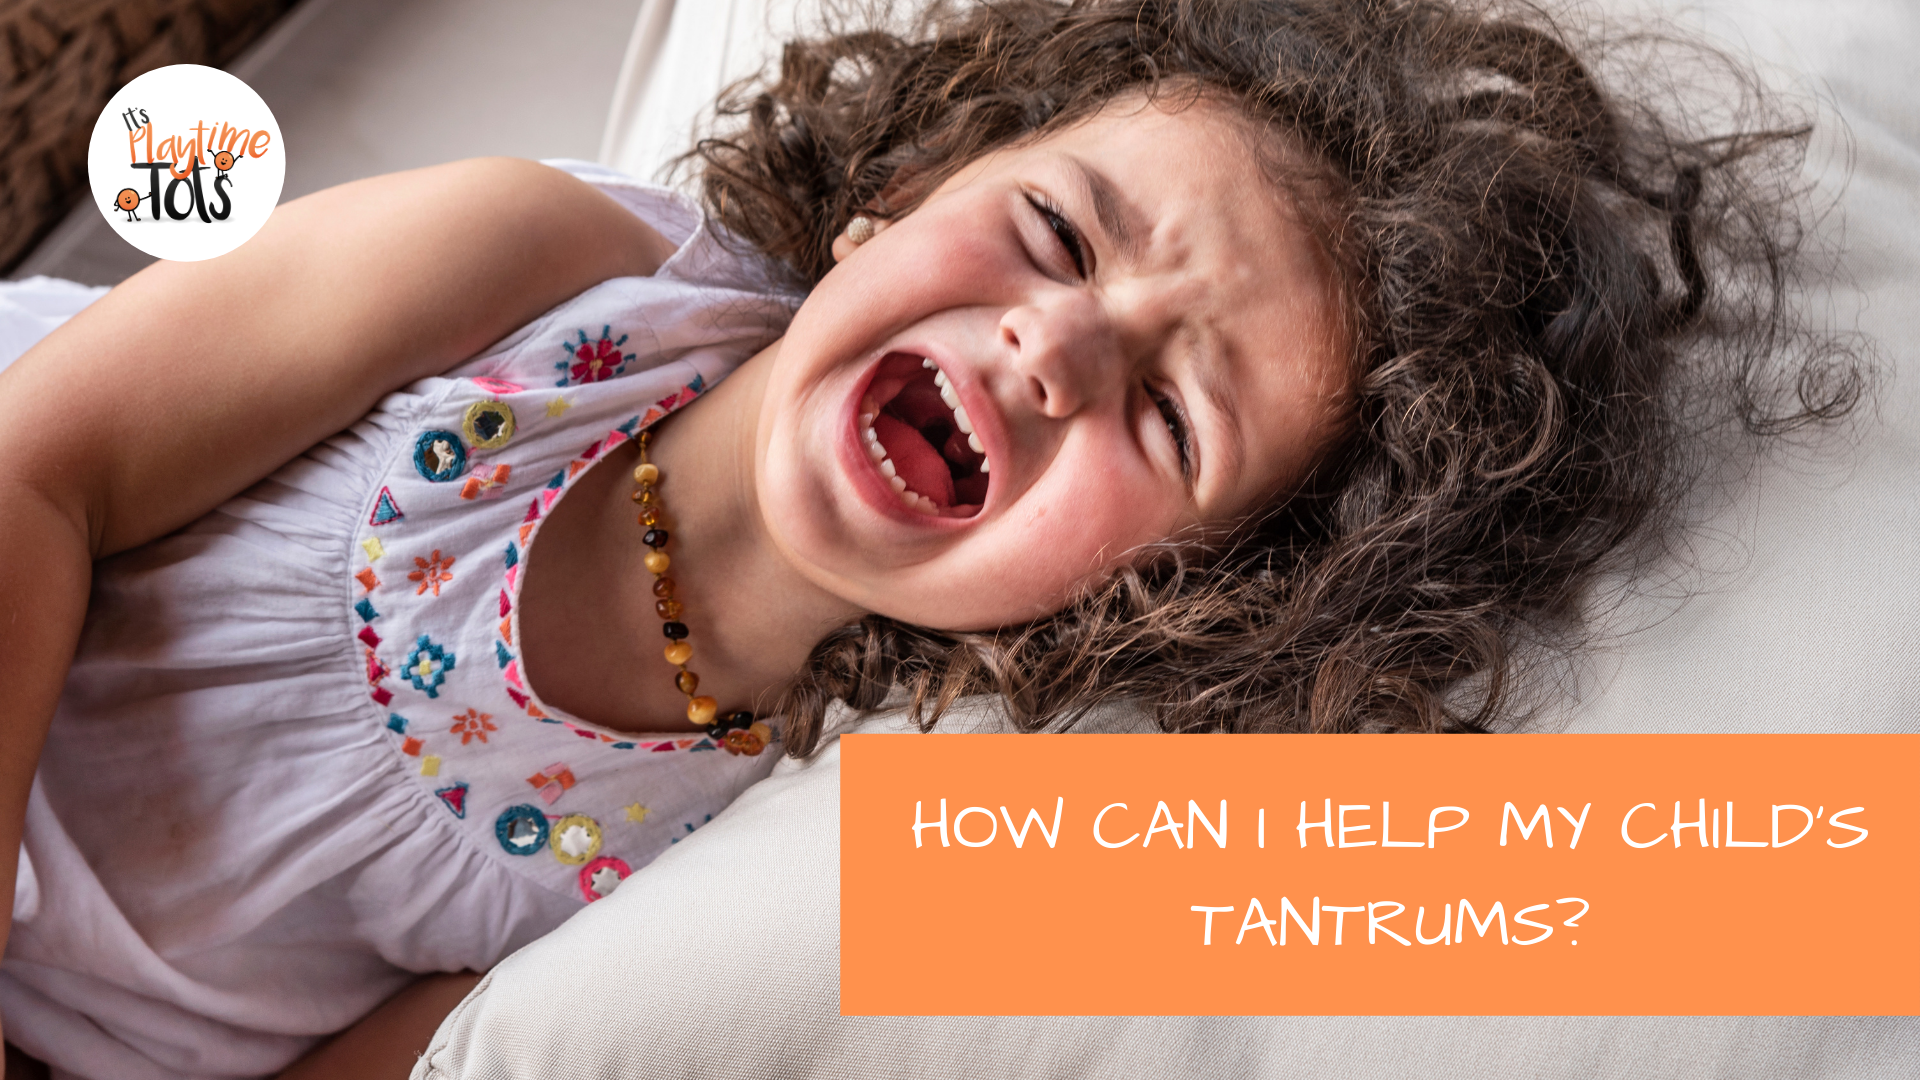 How Can I Help My Child's Tantrums?